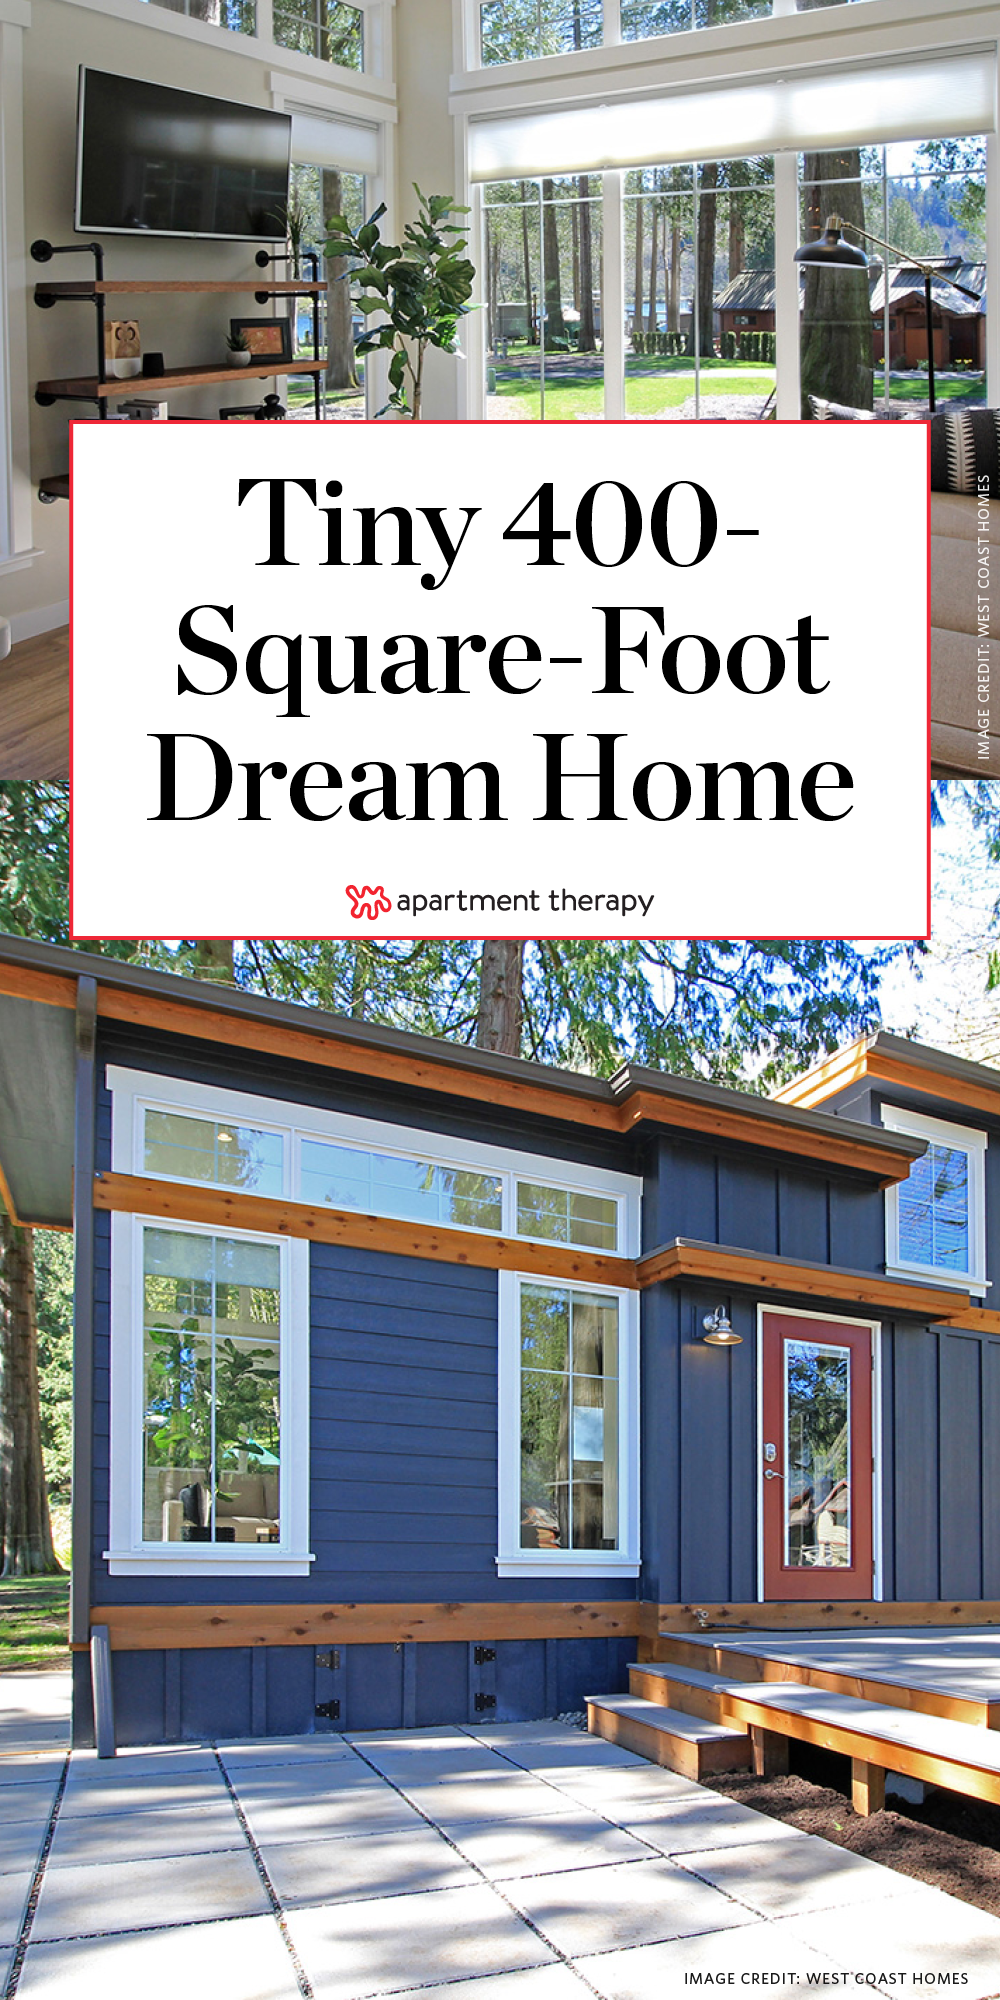 Full One Bedroom Tiny House Layout 400 Square Feet Apartment Therapy,House Of The Rising Sun Guitar Lesson For Beginners